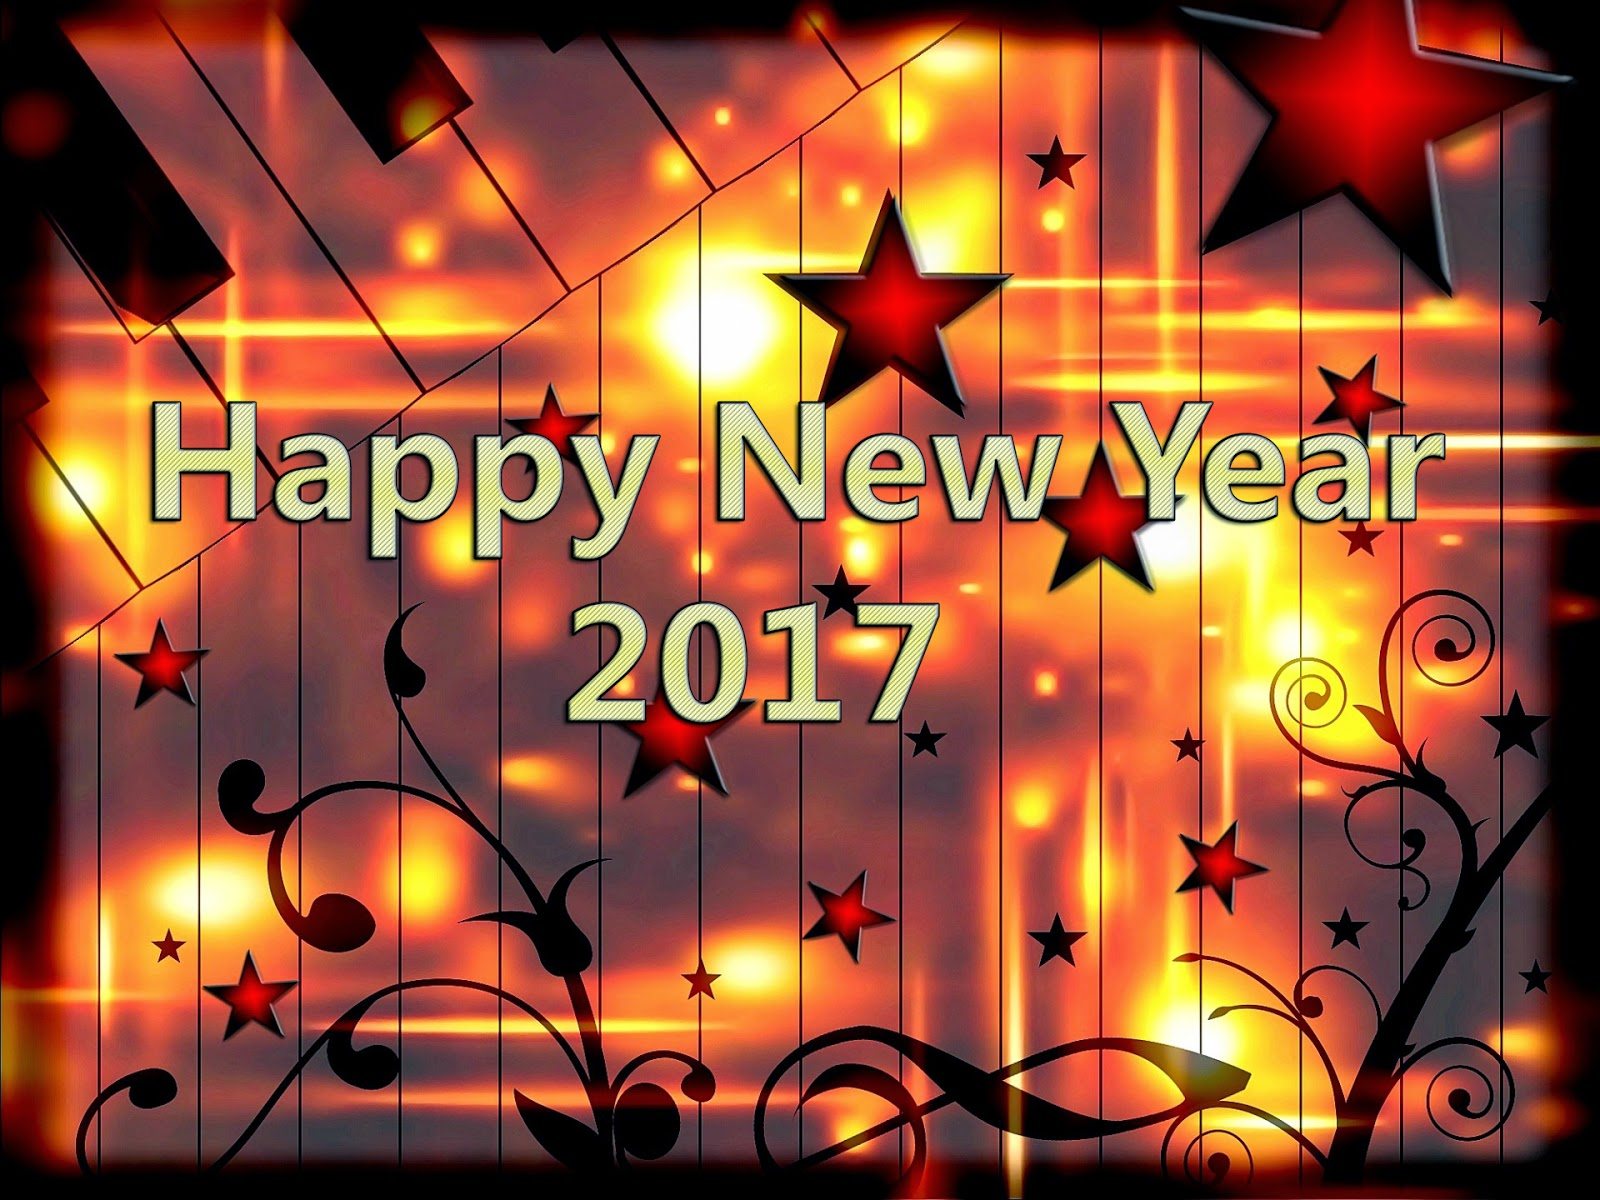 Download Free High quality 2017 Happy New Year Png Transparent Images